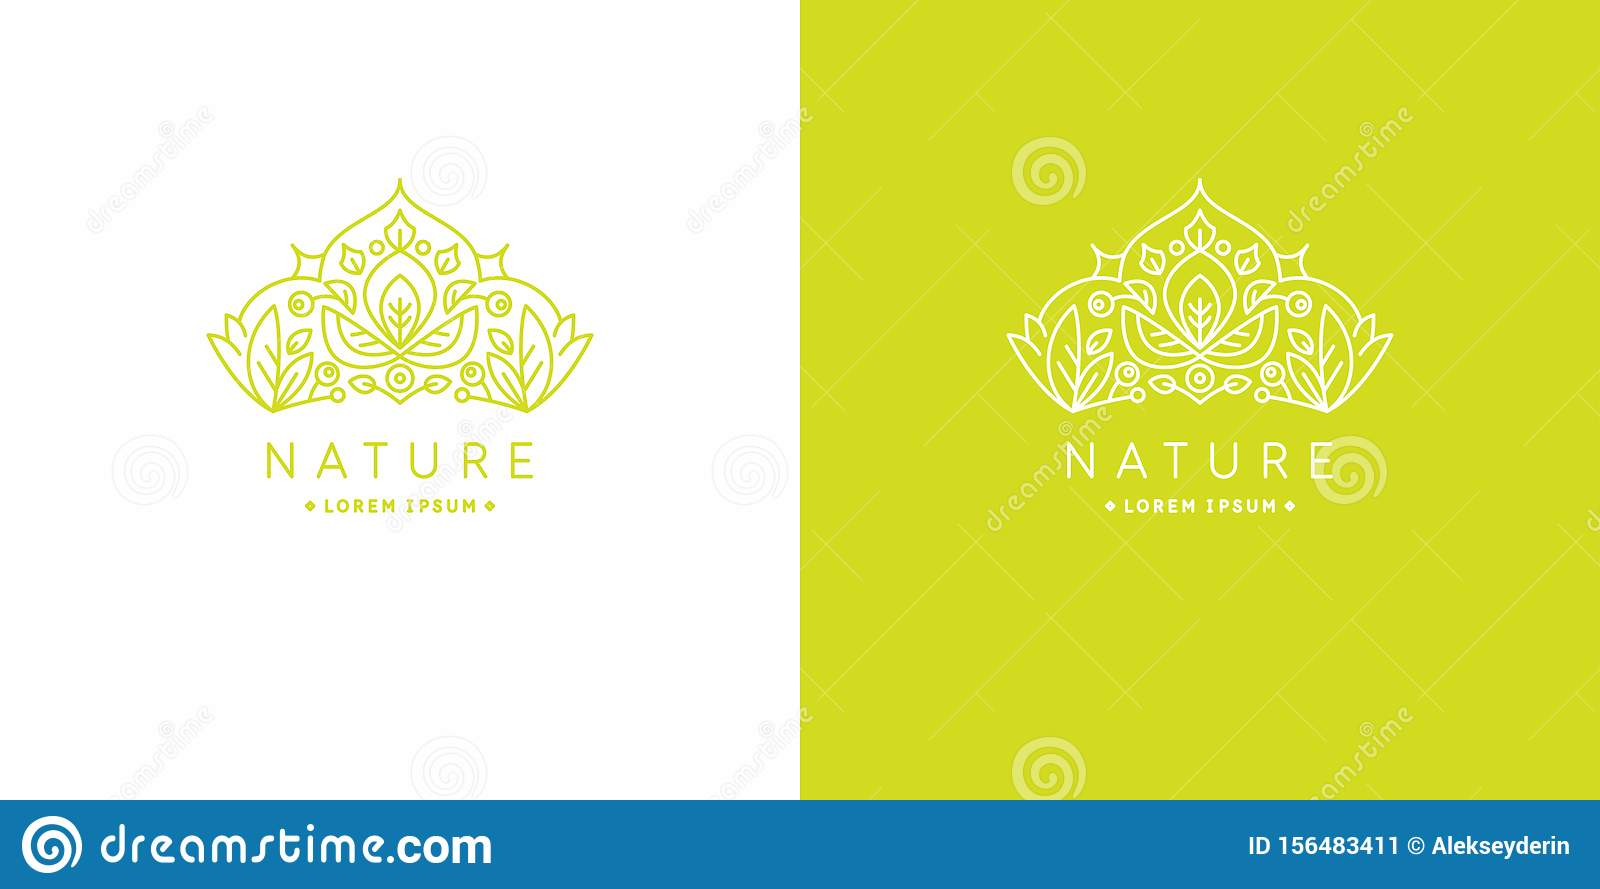 Original linear image of the crown. Illustration in simple flat style. Sign for natural cosmetics shop